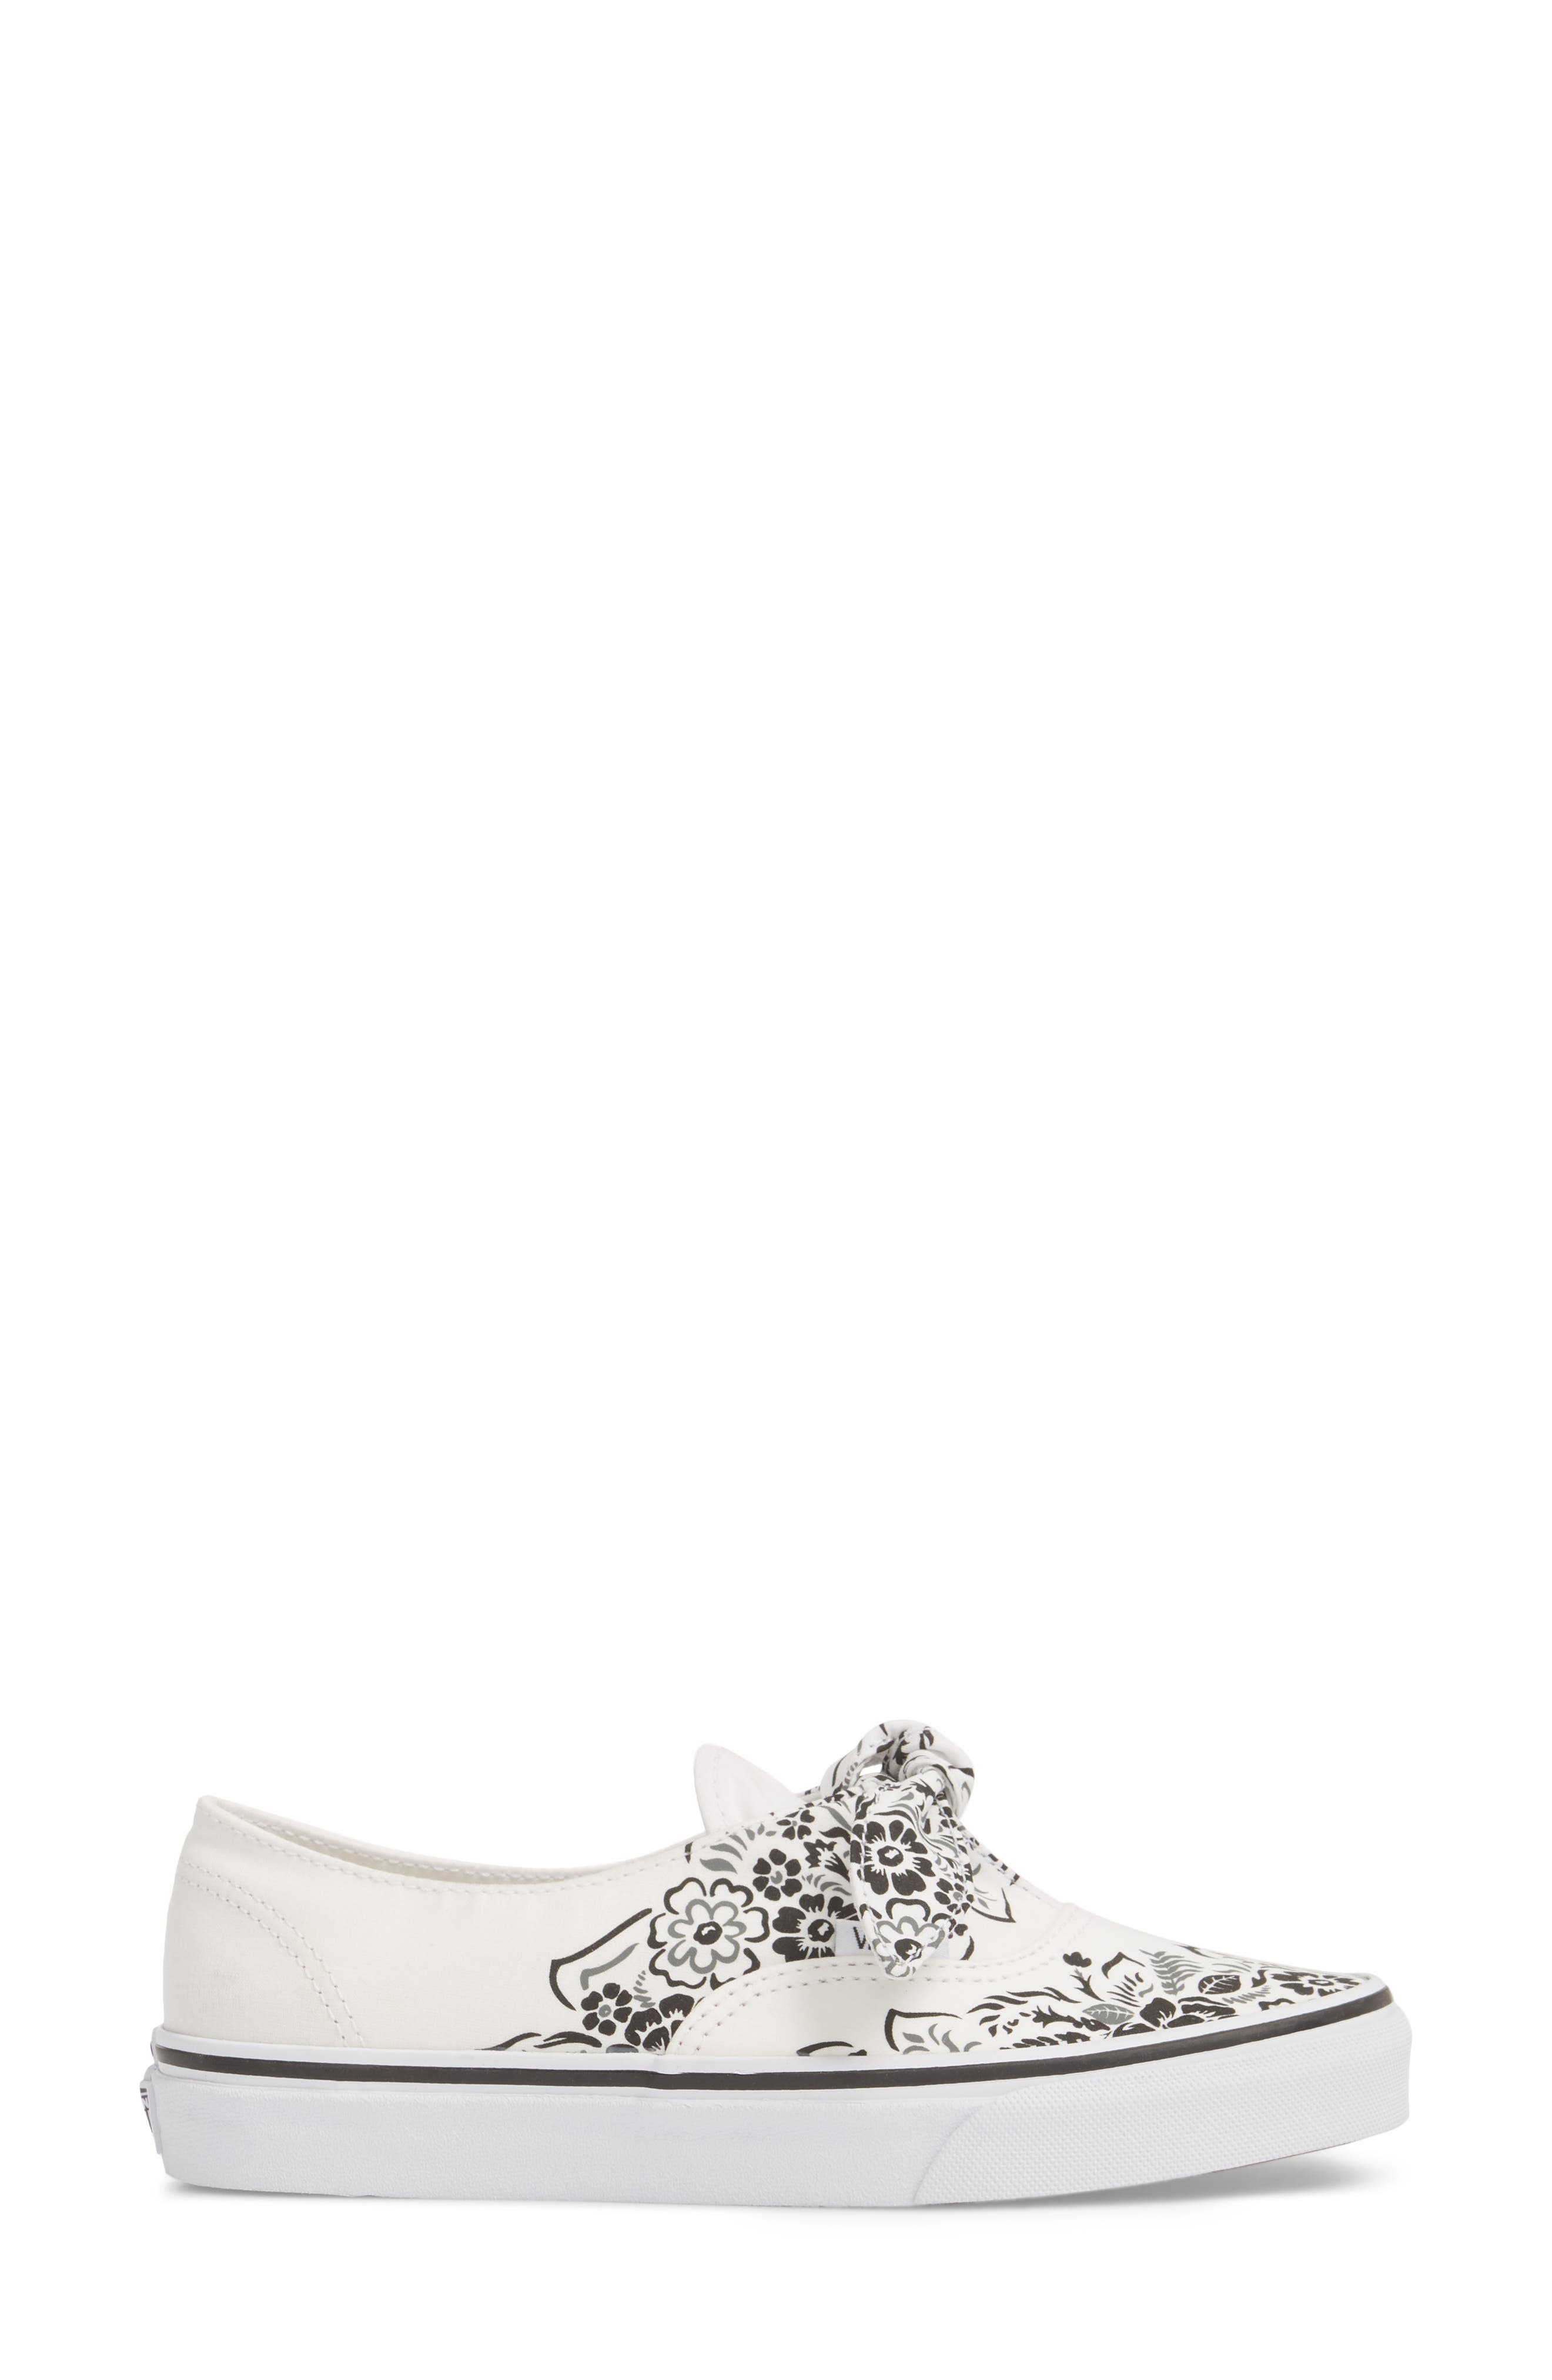 UA Authentic Knotted Floral Bandana Slip-On Sneaker,                             Alternate thumbnail 3, color,                             100